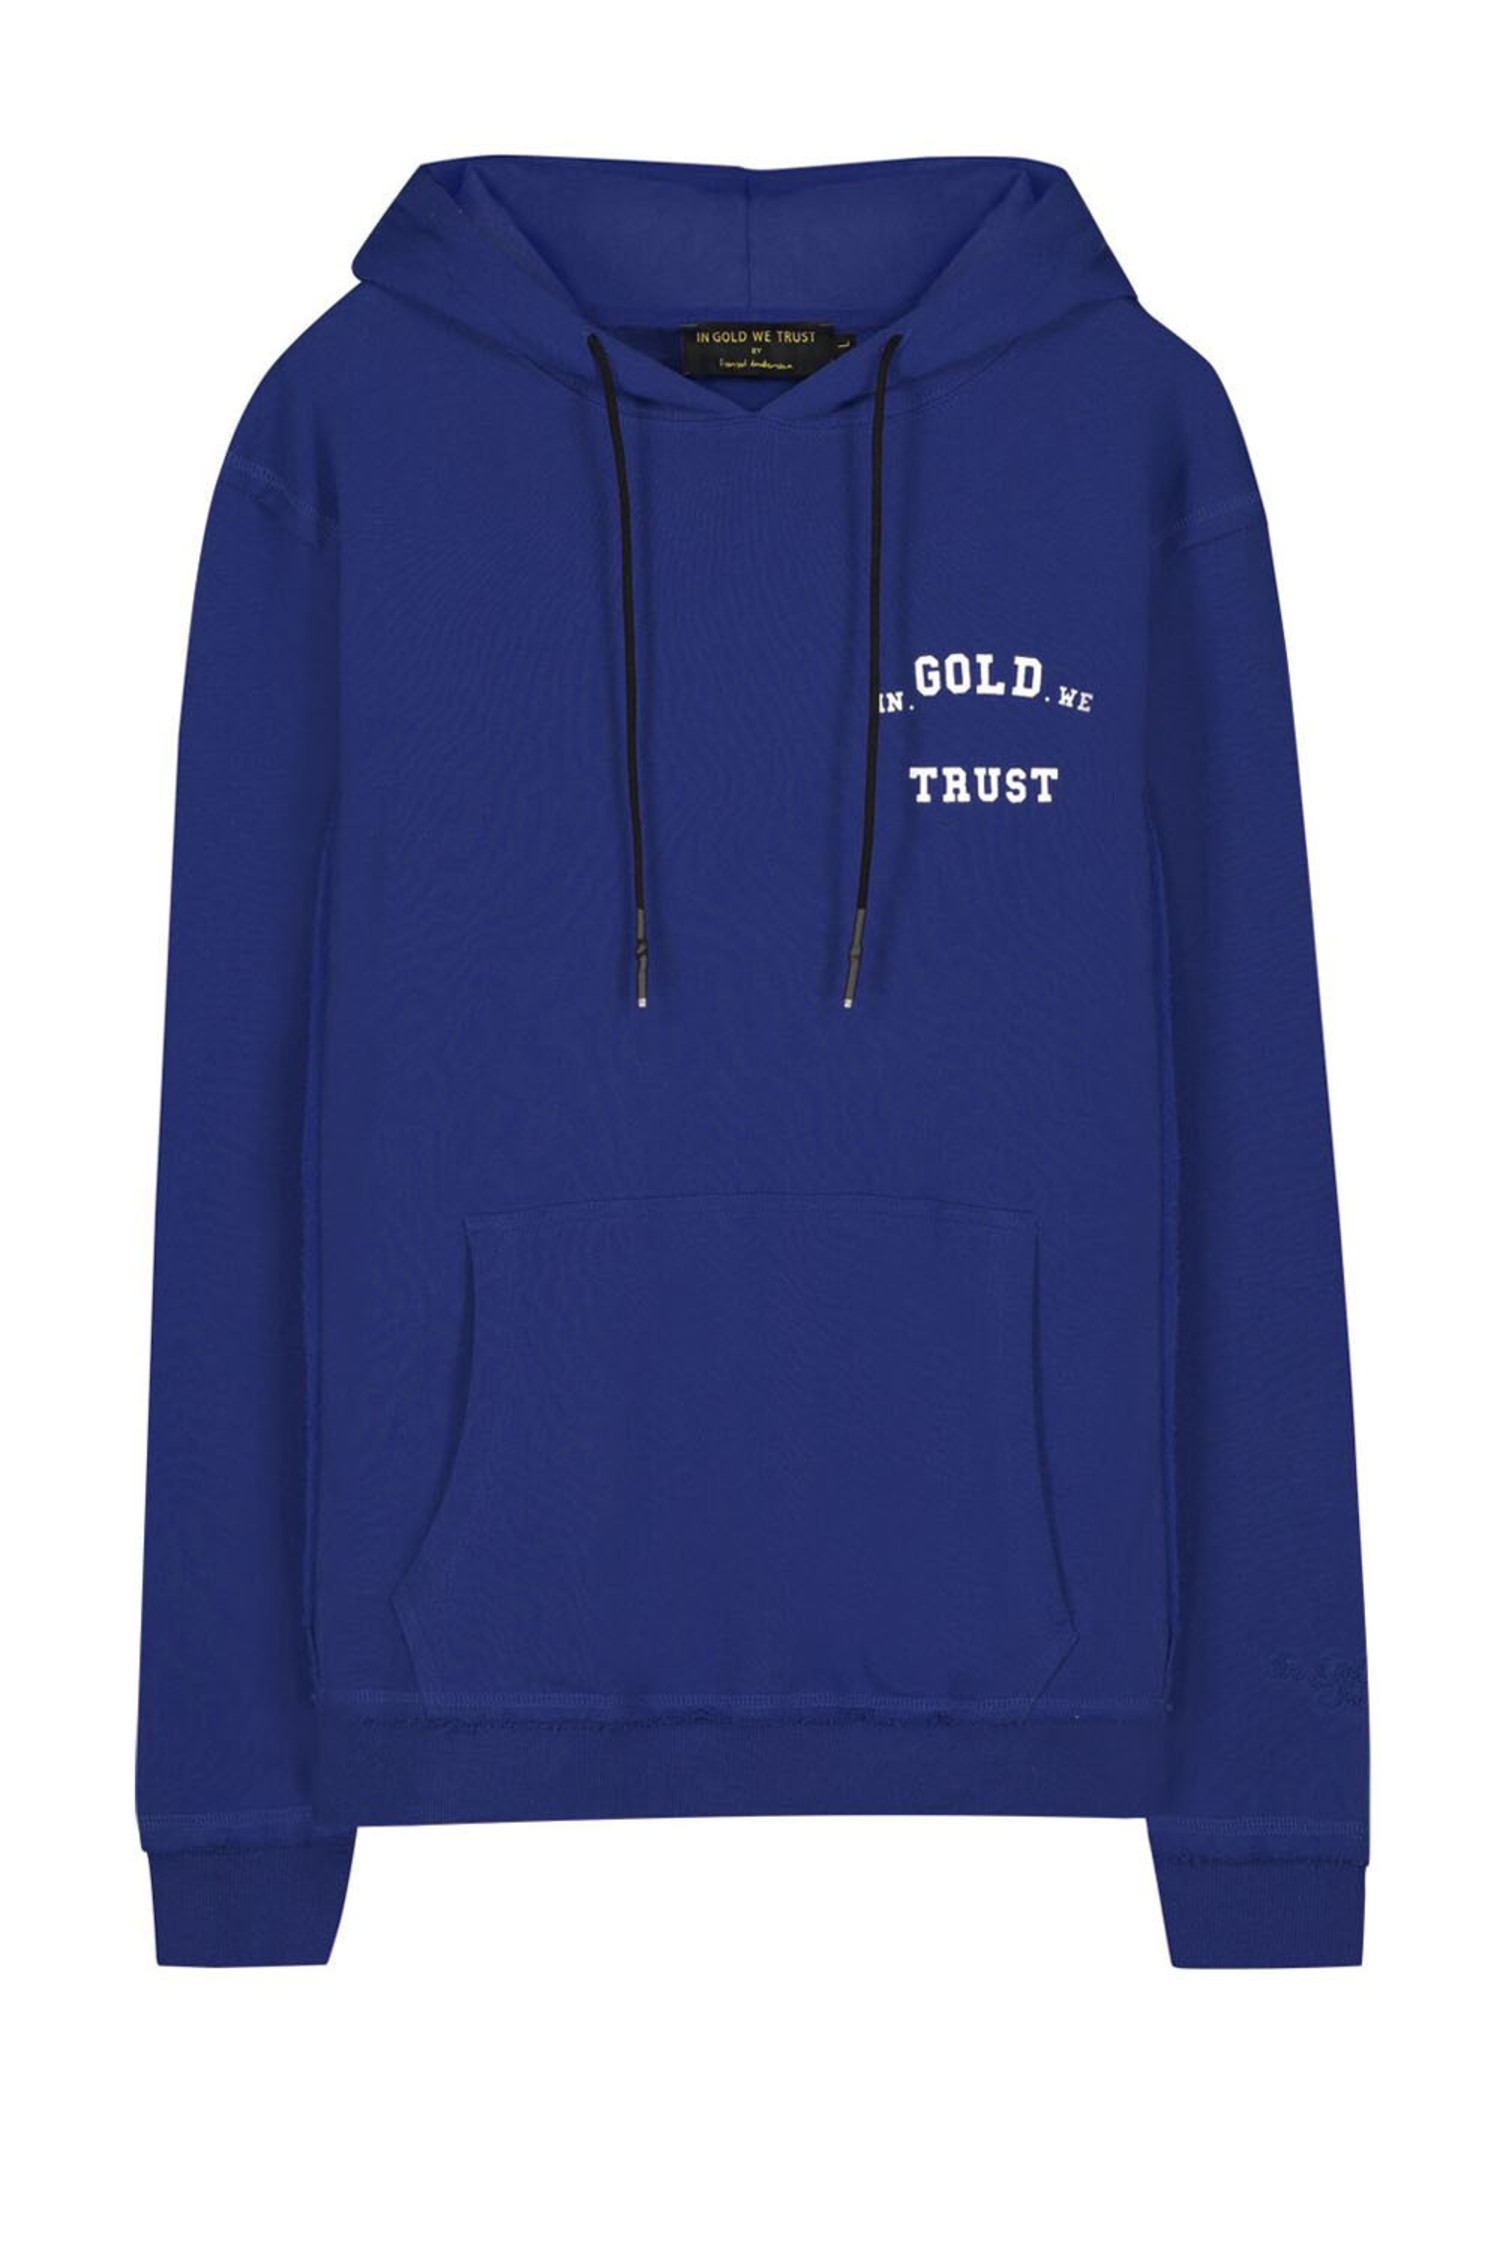 In gold we trust hoodie The Notorious IGWTH011 Dresscode